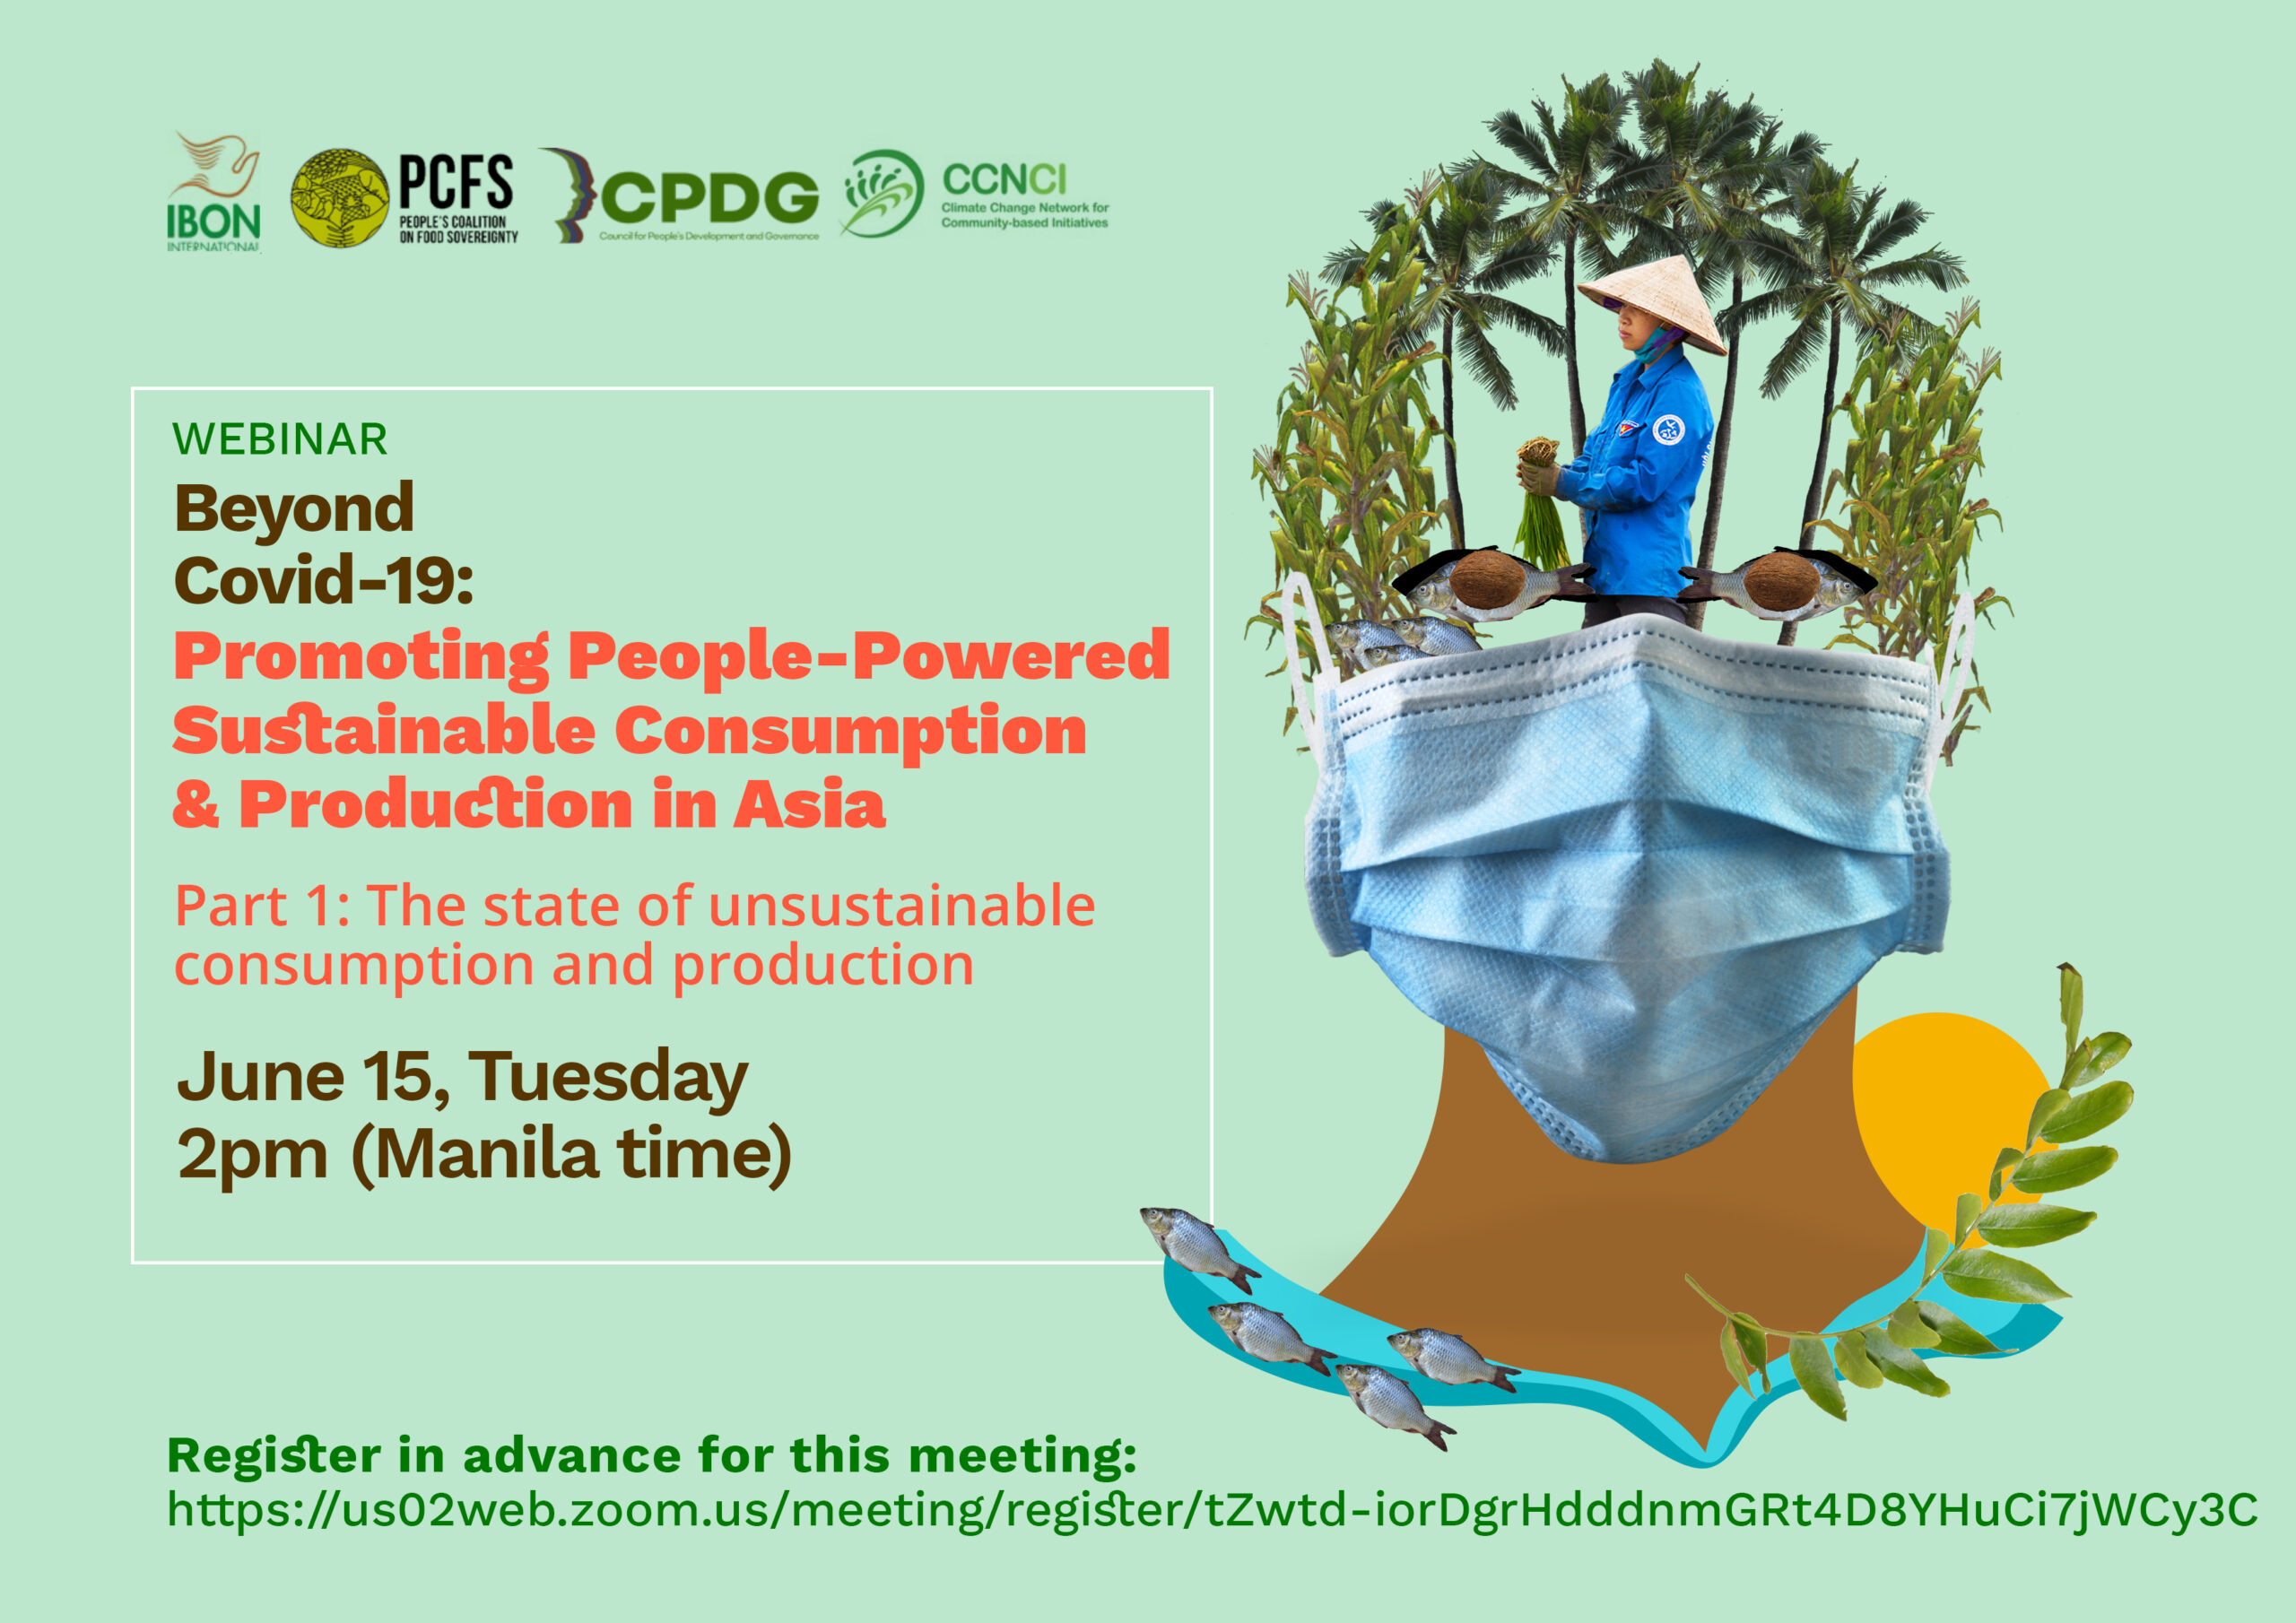 WEBINARS / Beyond Covid-19: Promoting People-Powered Sustainable Consumption in Asia and Africa (June 15 & 18)